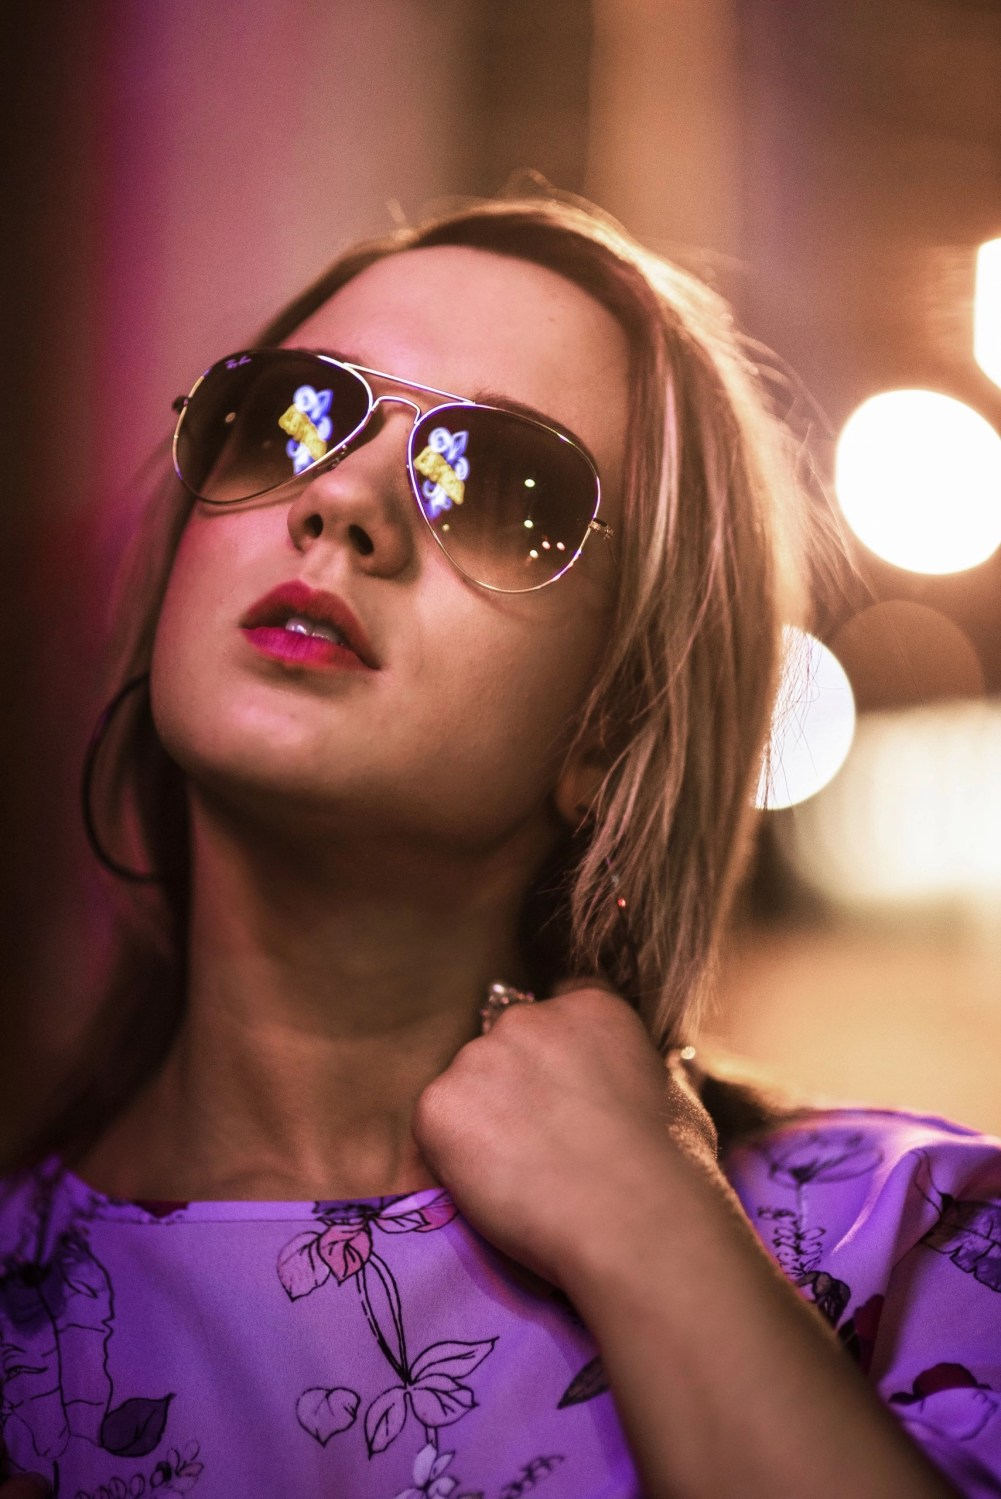 creative unique edgy senior photography of girl wearing sunglasses